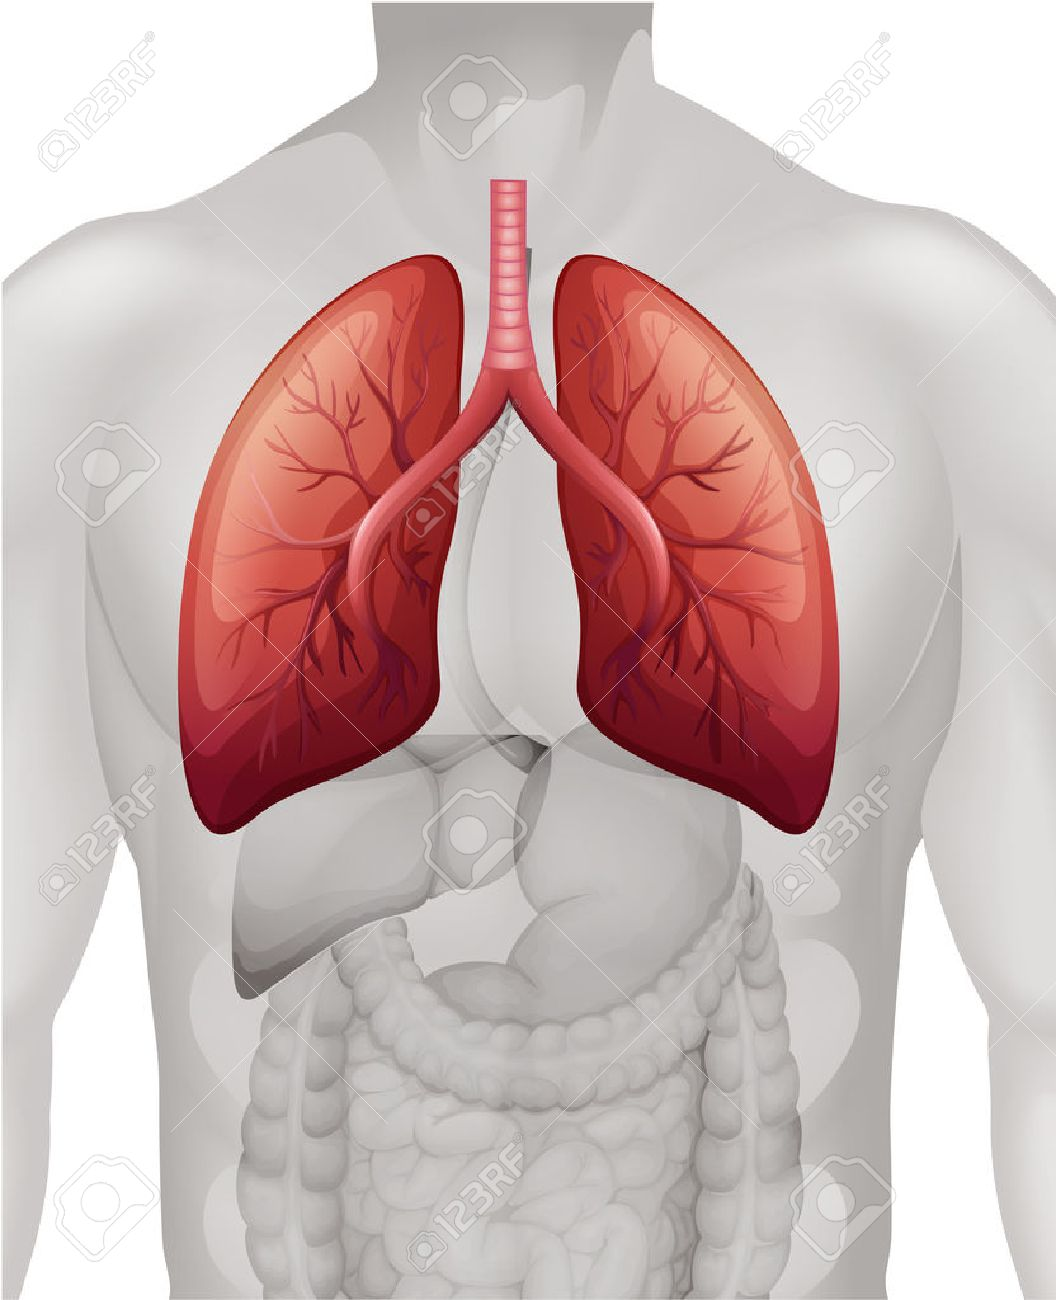 Lung Cancer Diagram In Human Illustration Royalty Free Cliparts ...